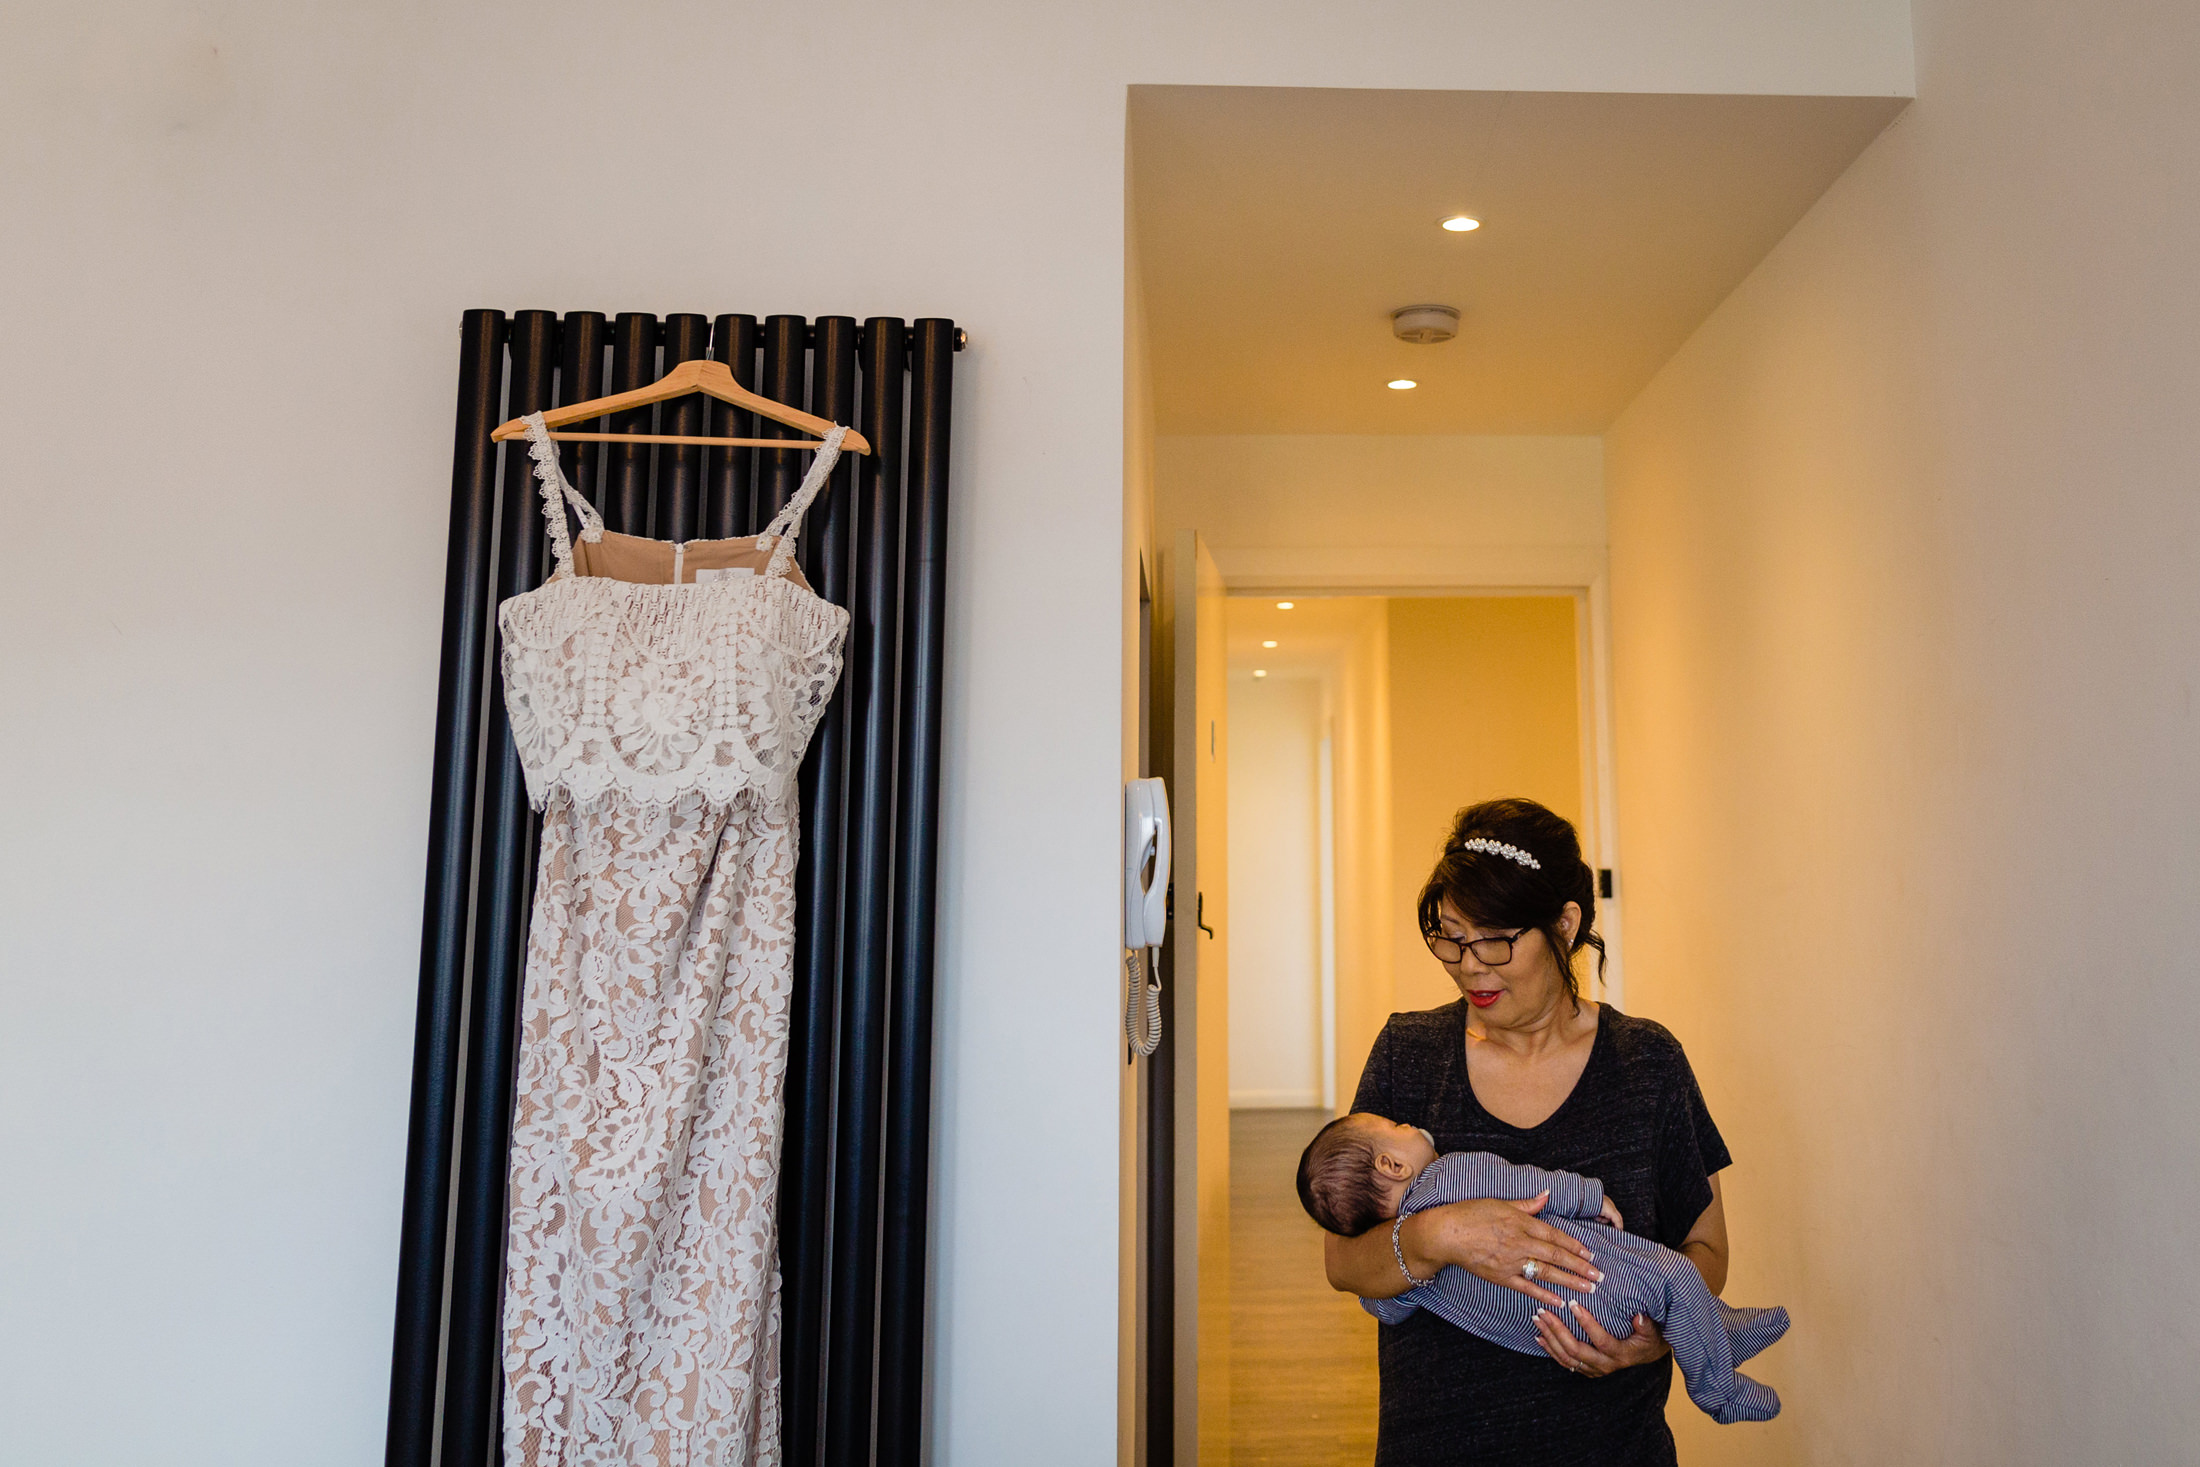 a wedding dress hangs on a tall radiator as a lady cradles a baby in the hallway. asylum wedding photography by emma and rich.